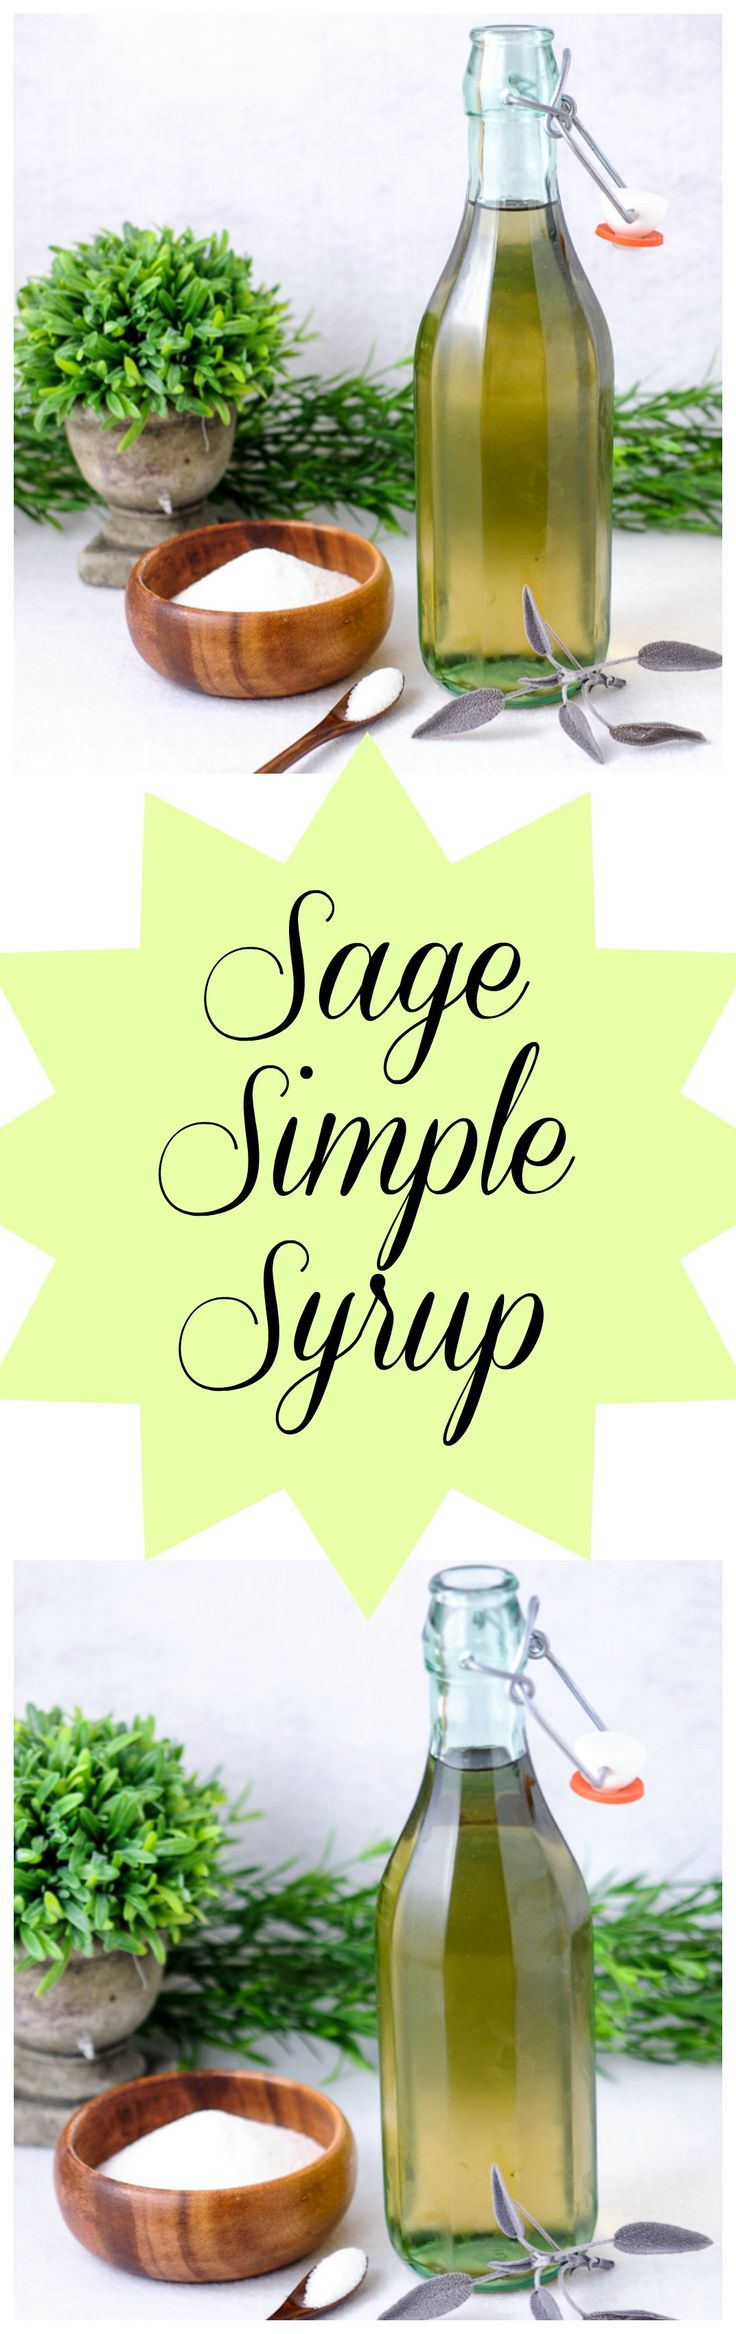 Sage Simple Syrup - Sage, sugar, and water. Great for ❤.❥ ❥ ❥ ❥❥‿↗⁀❥♥‿↗⁀❥♥‿↗⁀❥♥♥x. cocktails, teas, mocktails